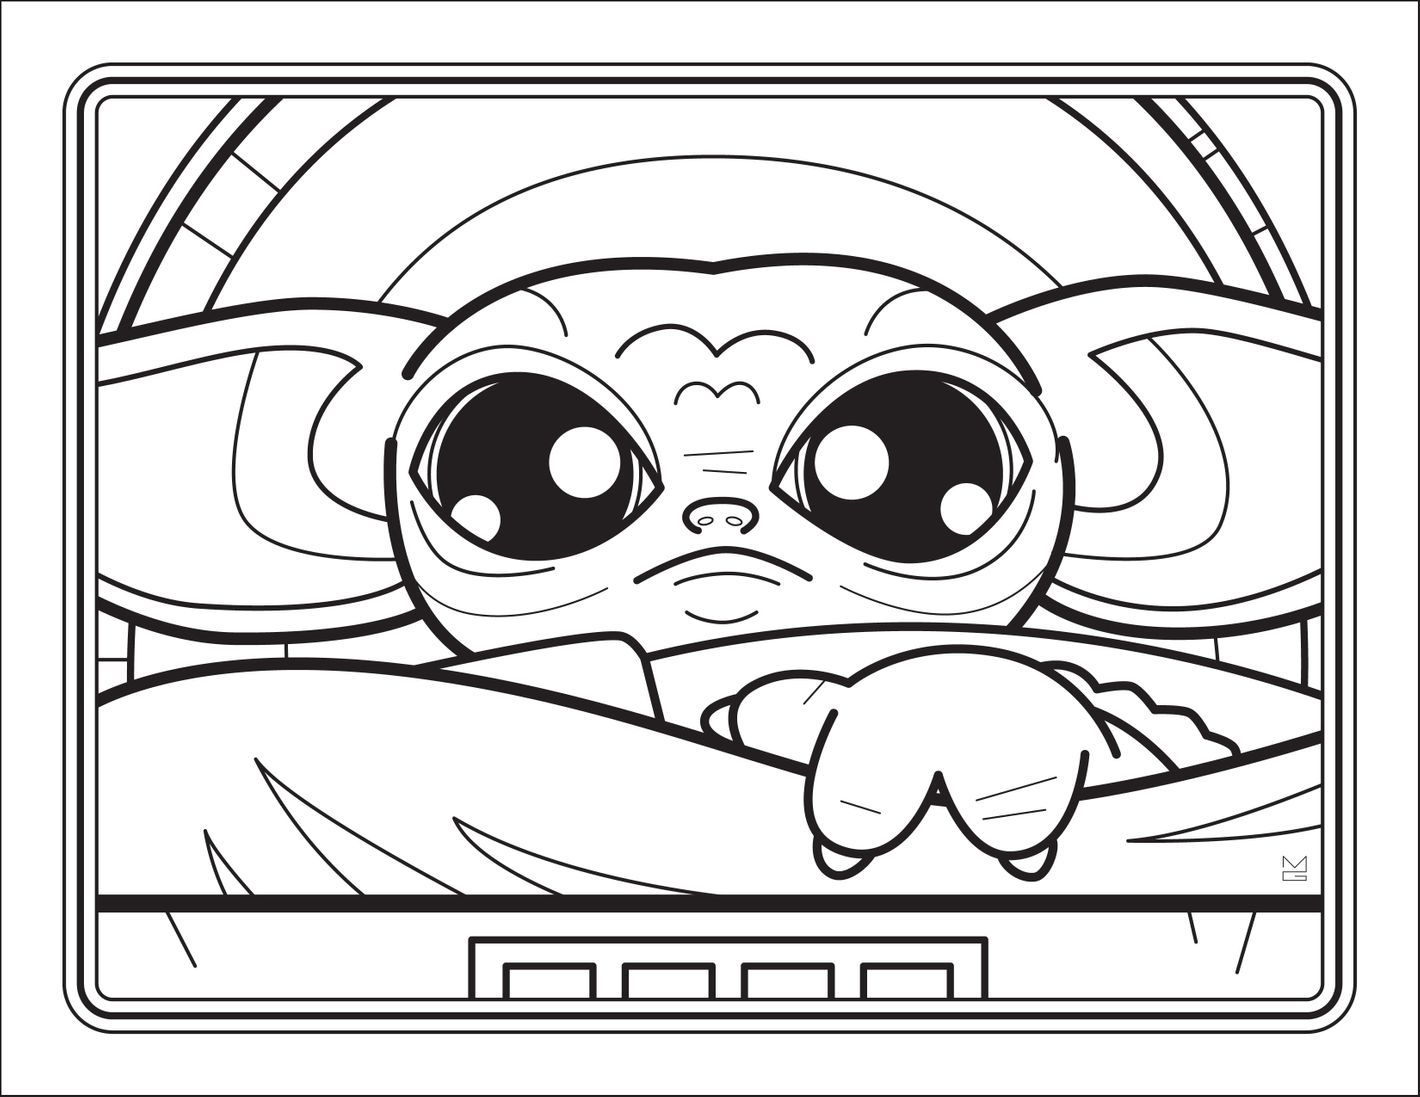 The Unofficial Baby Yoda Coloring Book In 2020 Coloring Books Baby Coloring Pages Dinosaur Coloring Pages